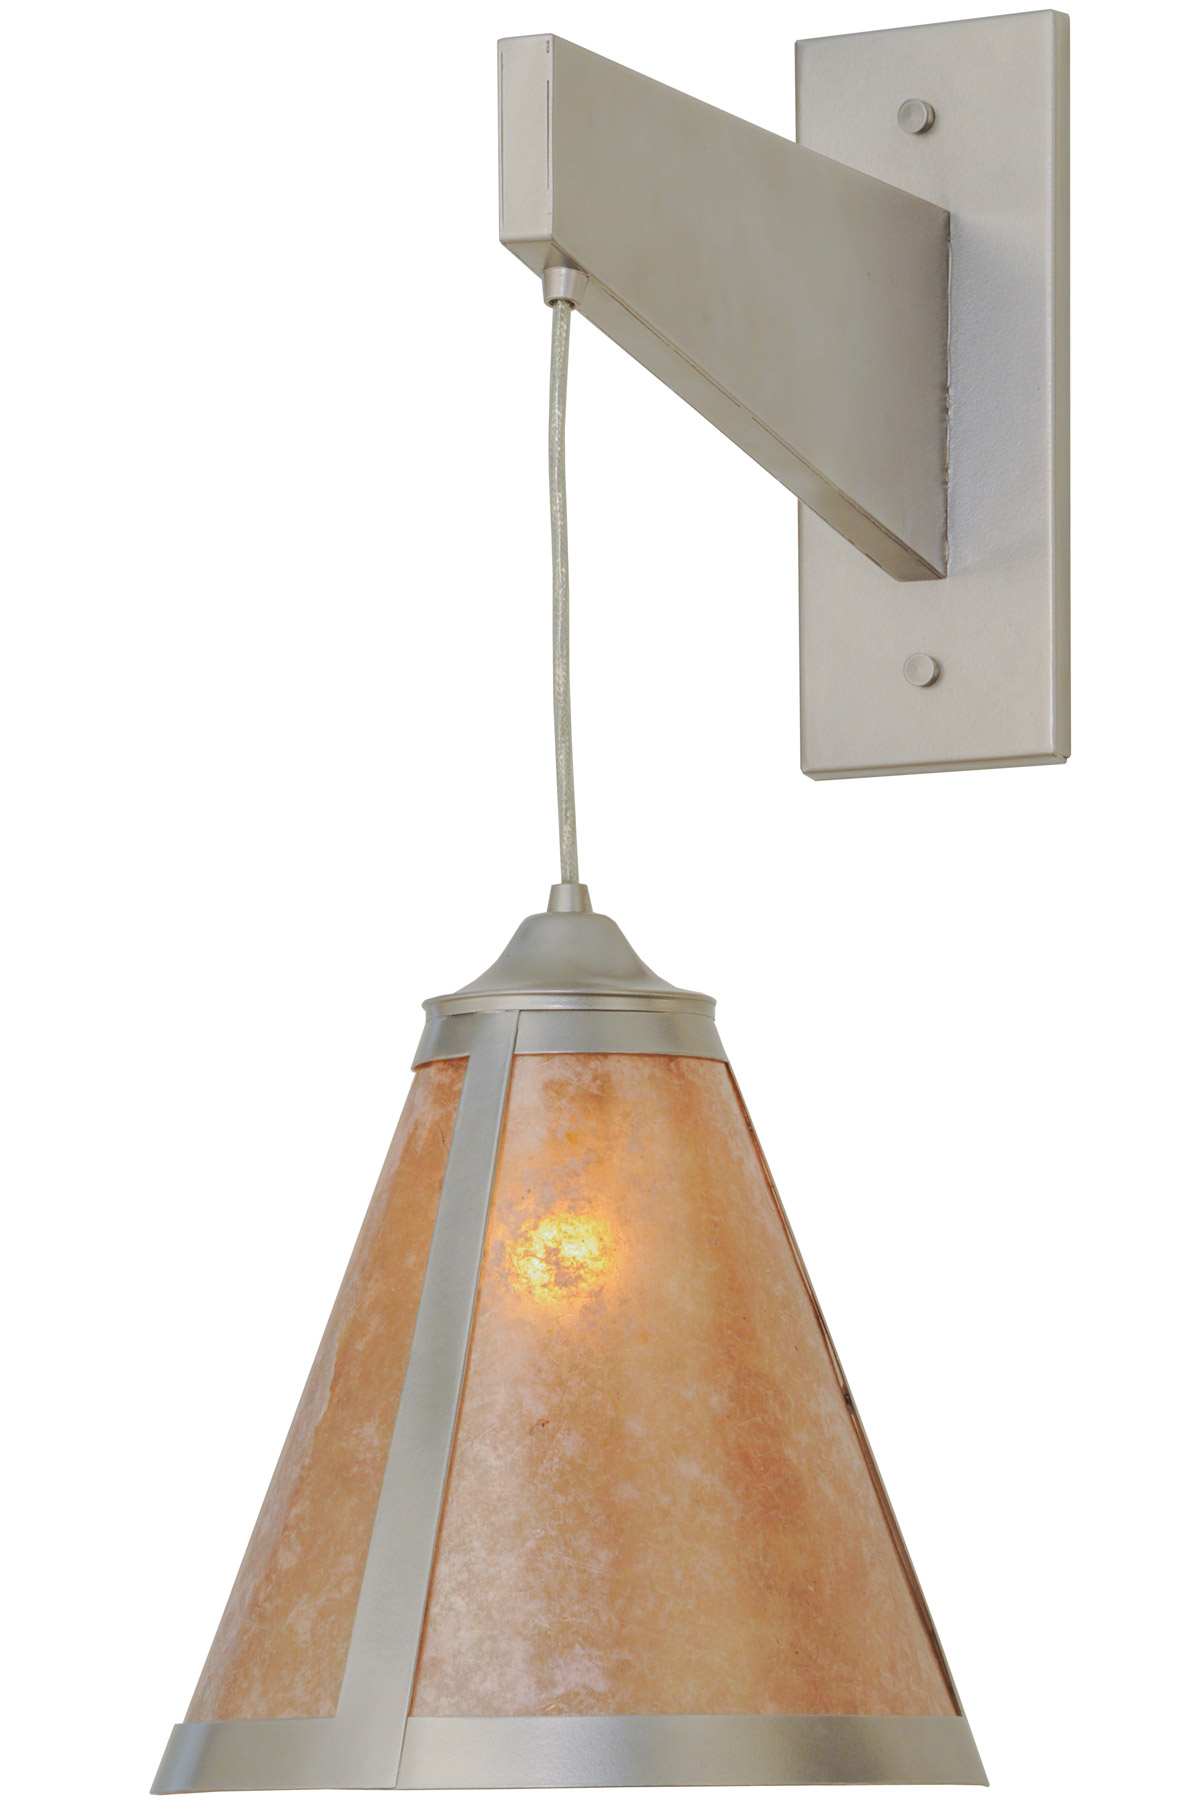 Wall Mounted Cantilever Lamp : Meyda 148257 Cantilever Wall Sconce